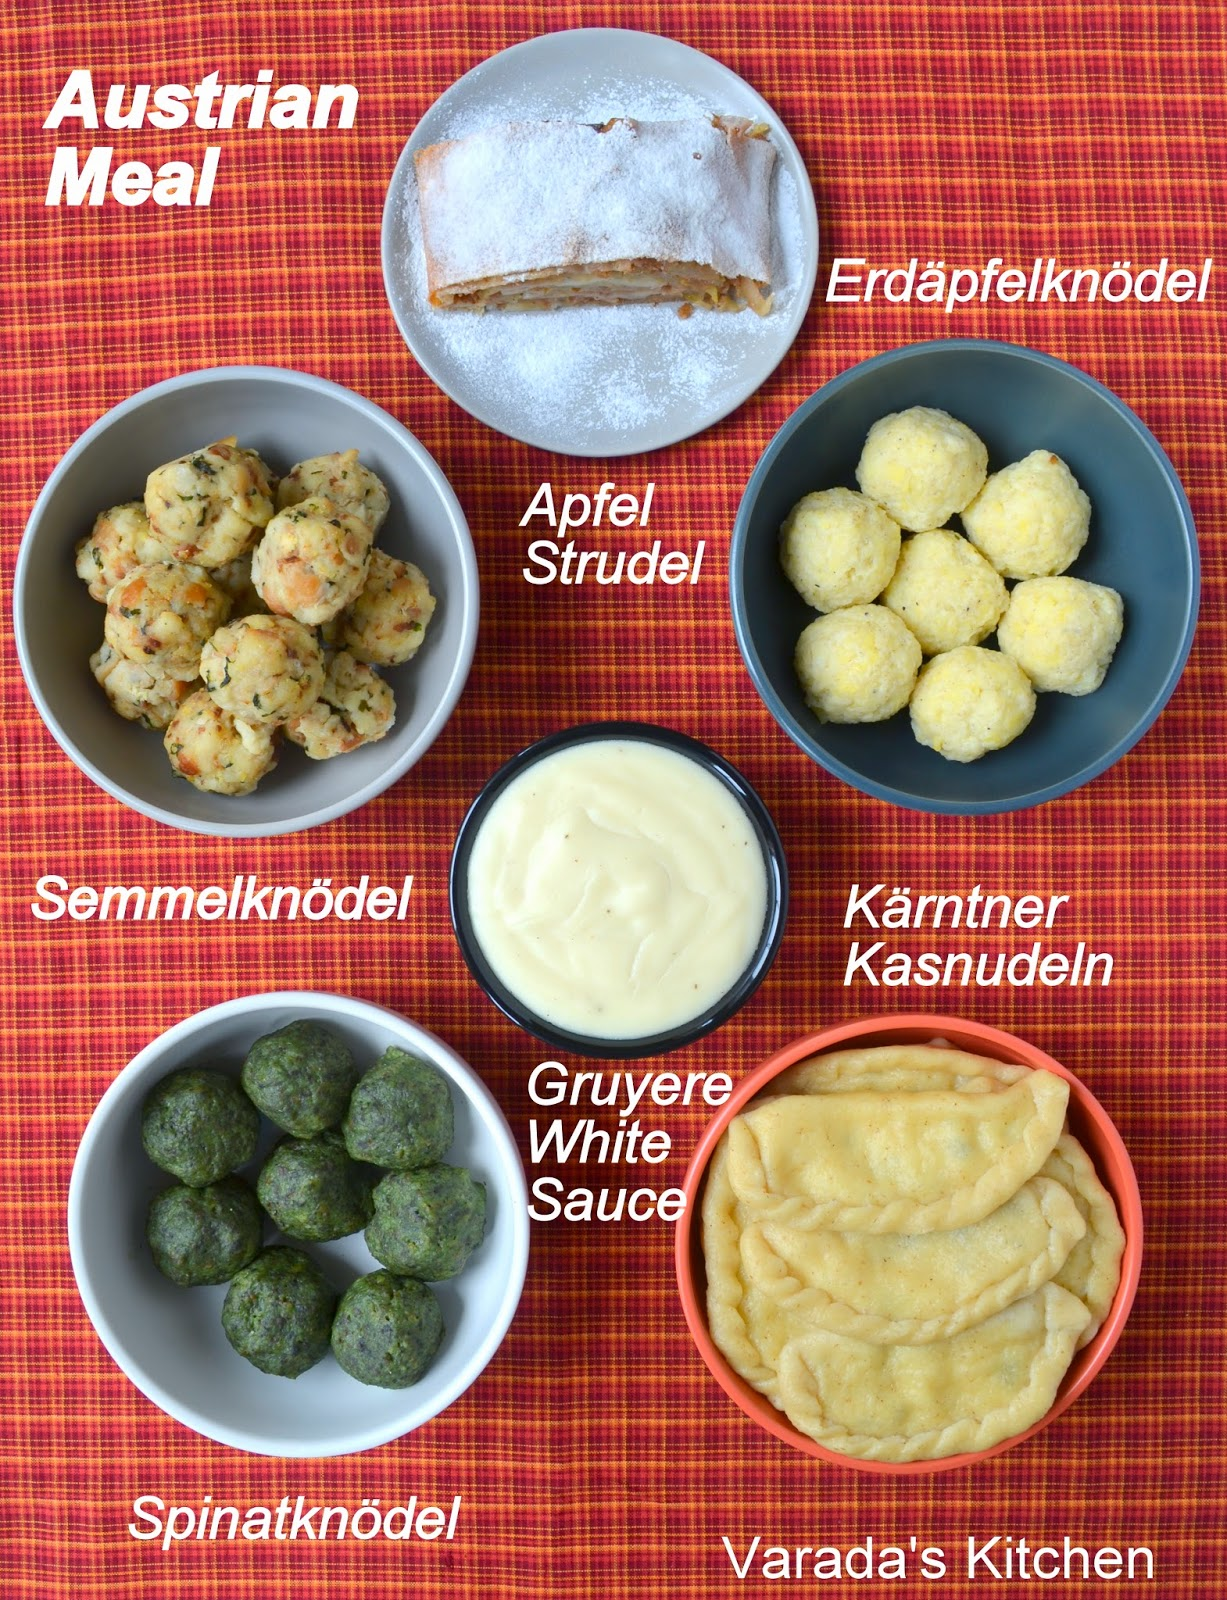 Varadas kitchen austrian meal i took inspiration from the song and prepared a meal of noodles and a few other dumplings with apple strudel i am presenting a vegetarian austrian forumfinder Image collections